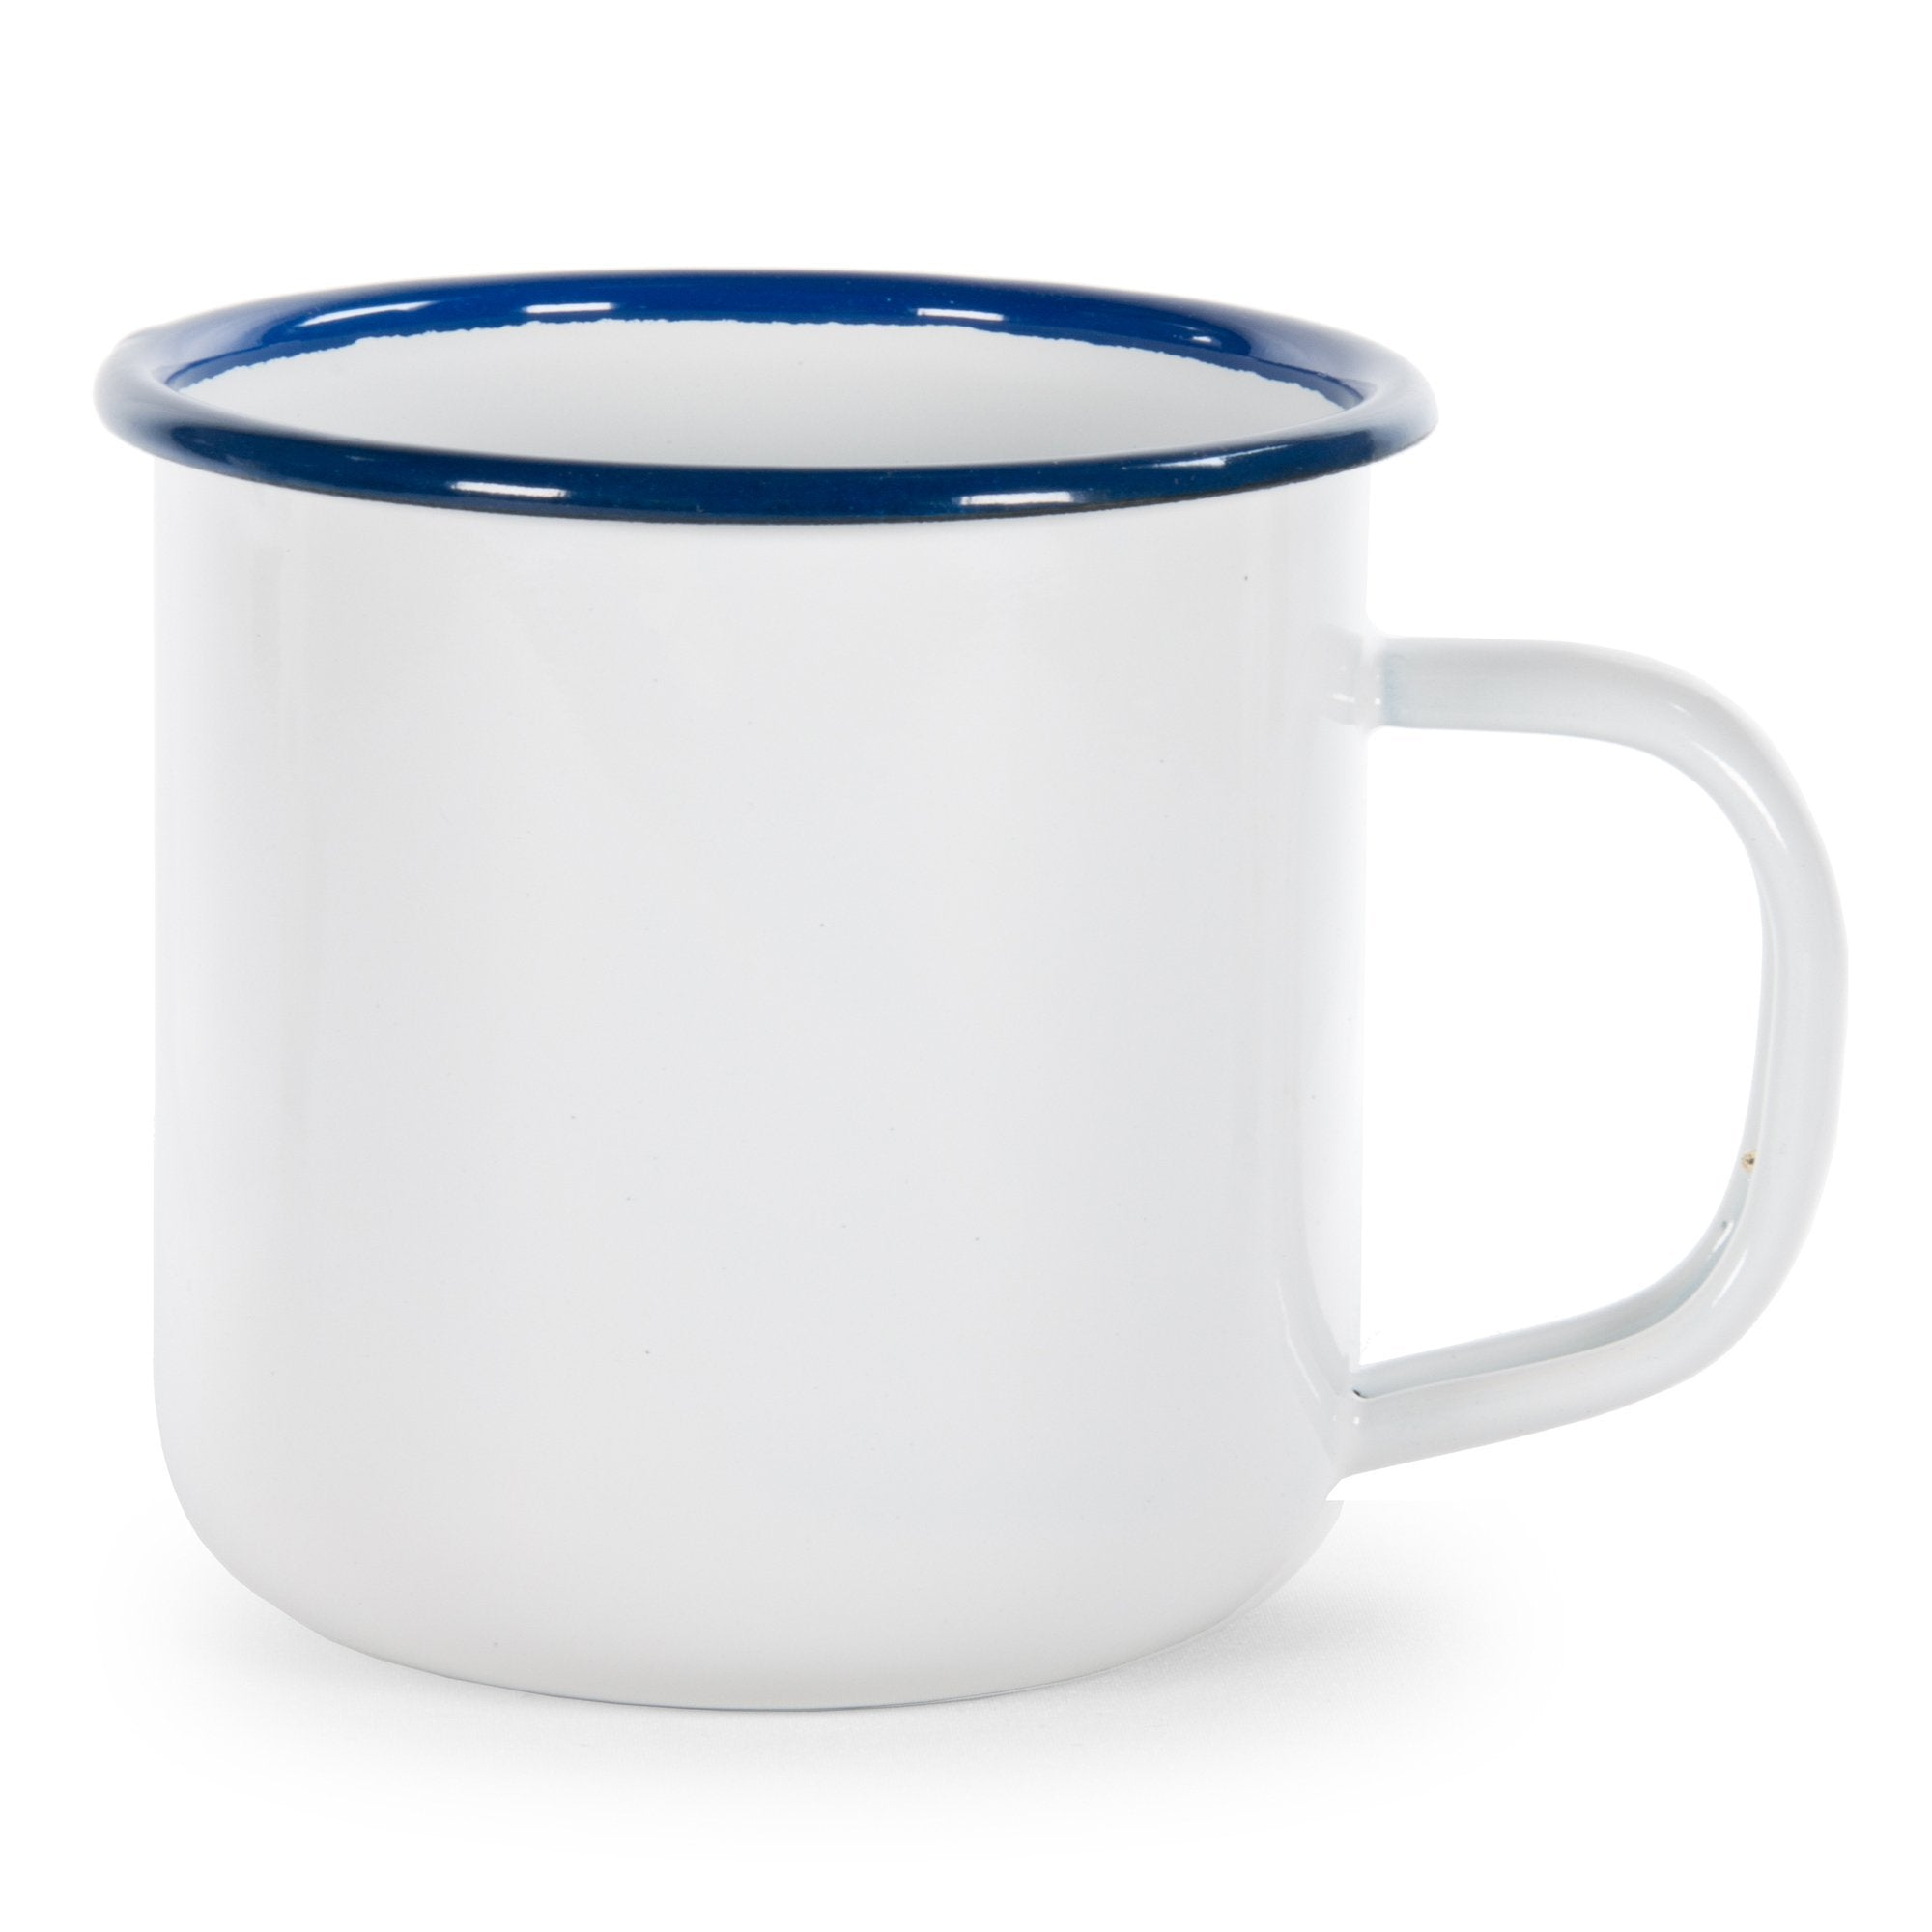 RCW92 - Glampware  Mugs - White with Cobalt Trim  - Set of 4